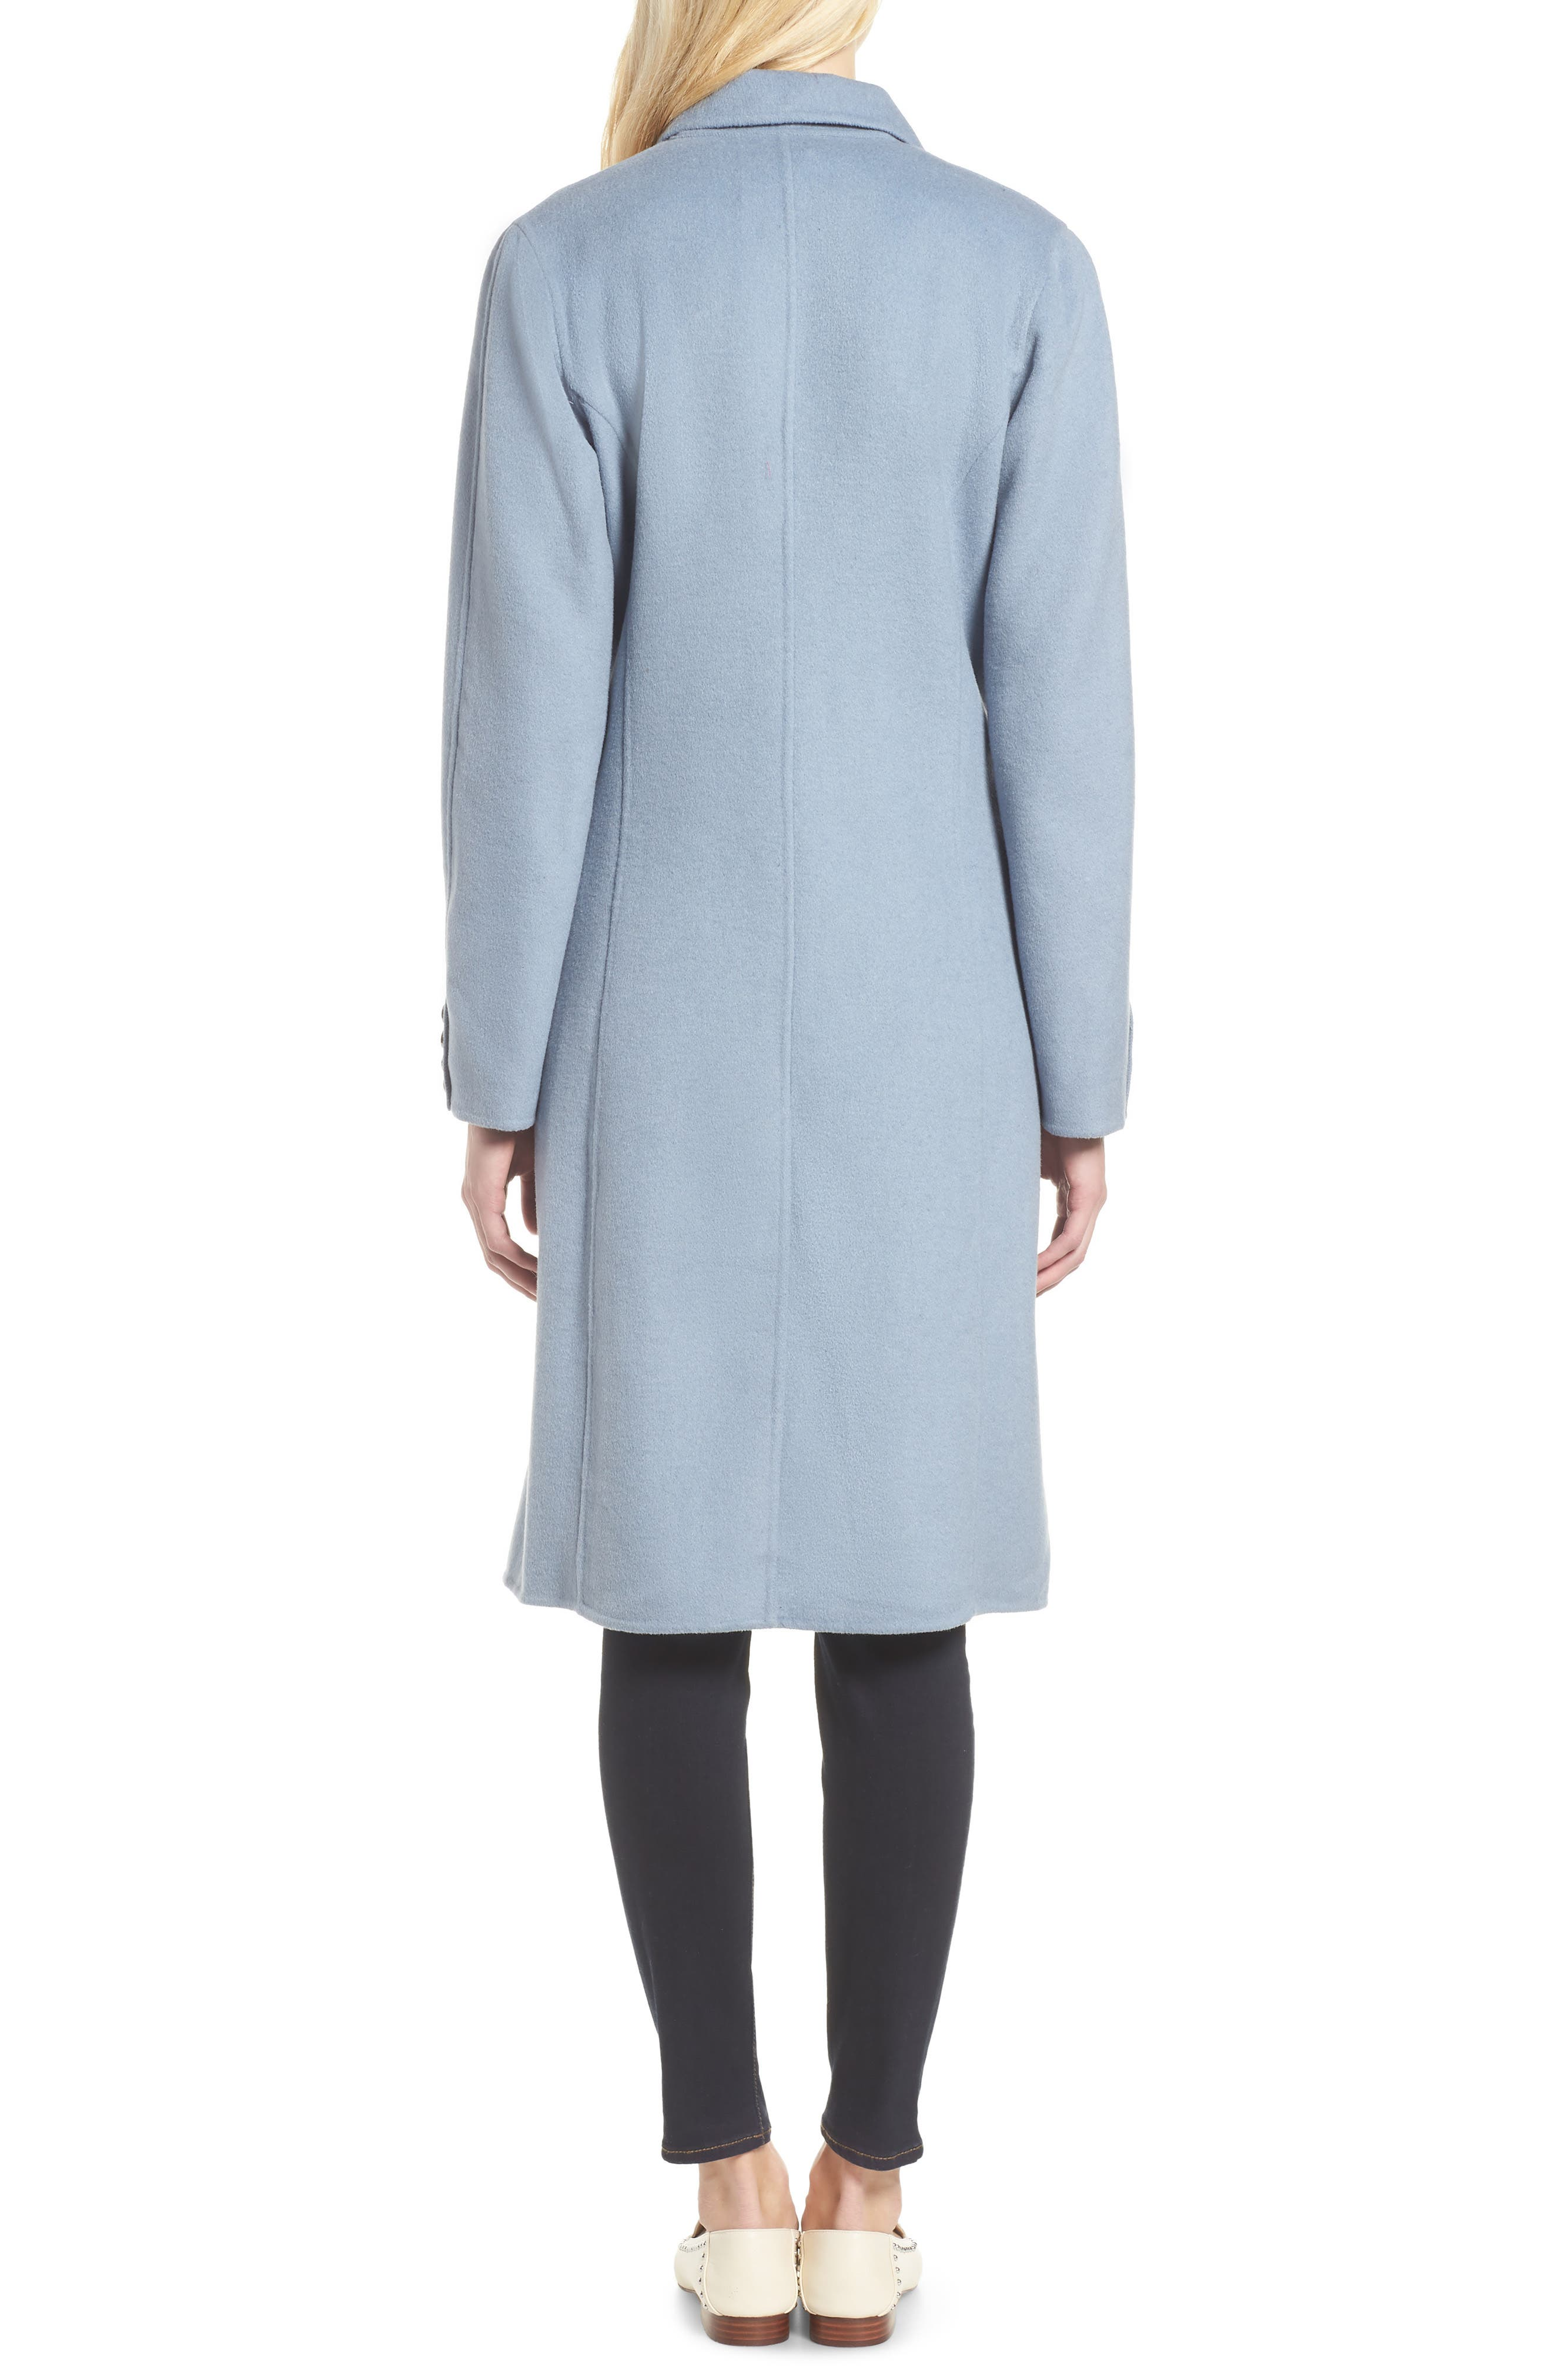 Taylor Double Breasted Wool Coat,                             Alternate thumbnail 2, color,                             PALE BLUE